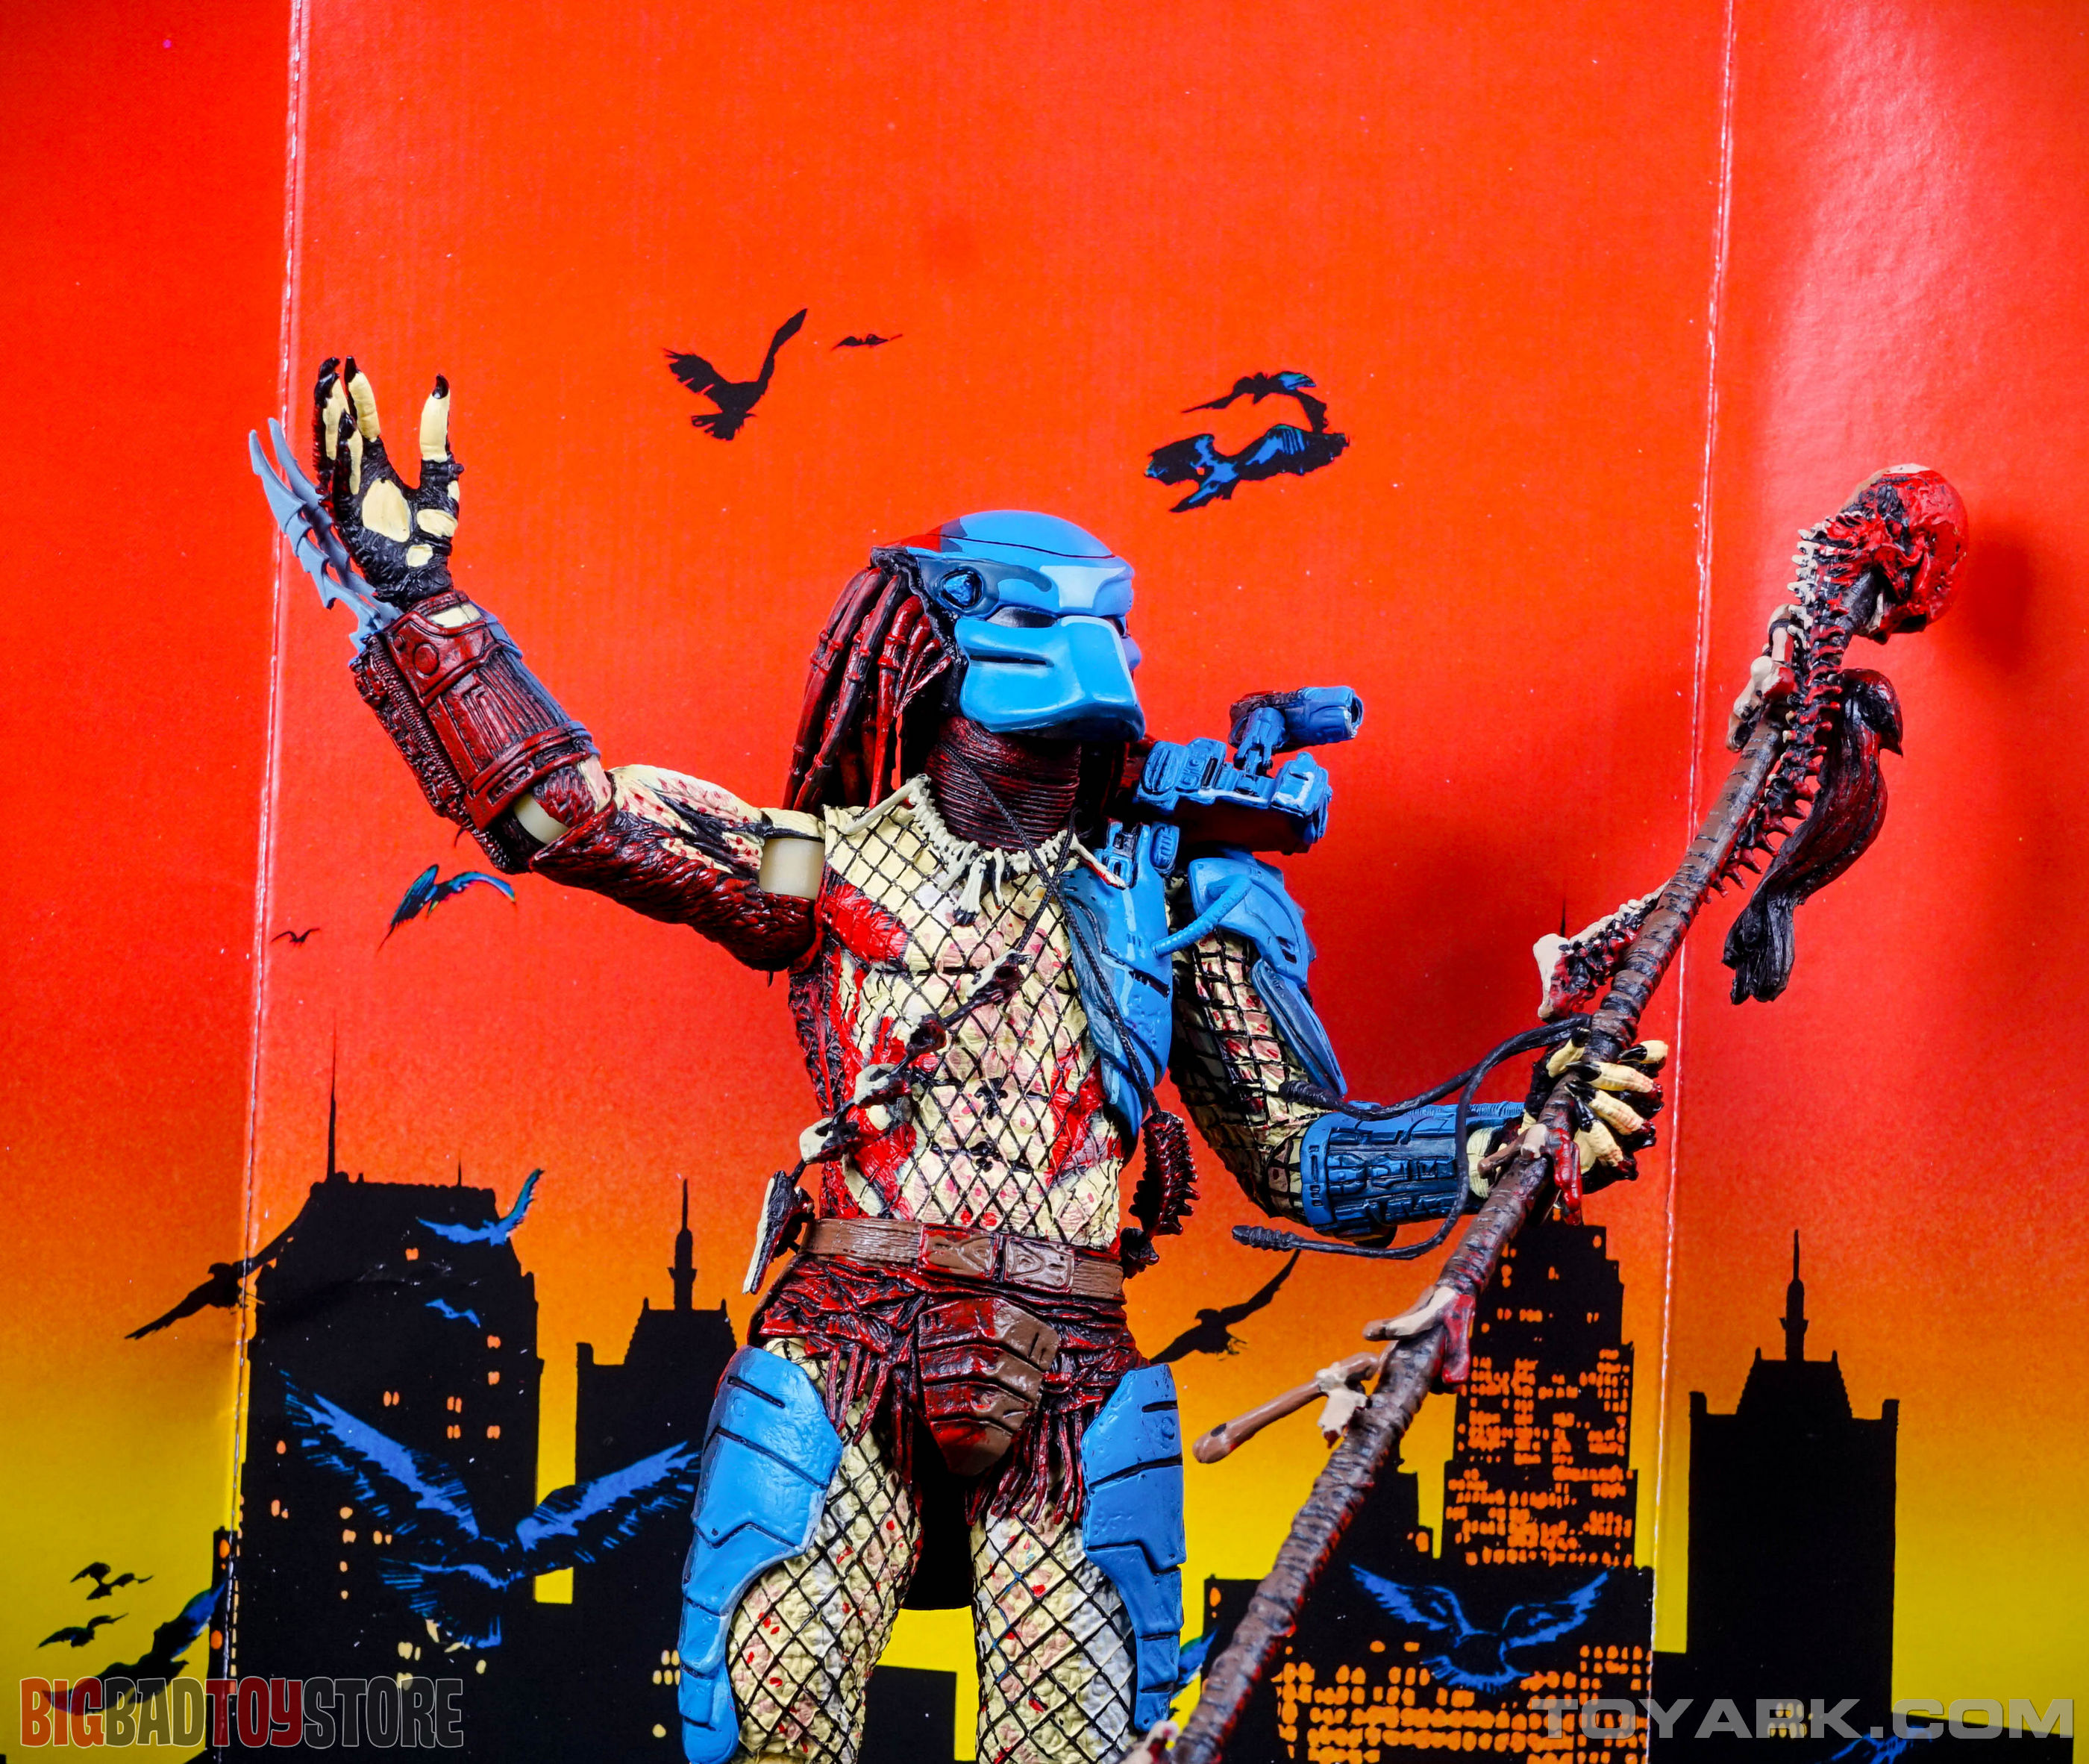 http://news.toyark.com/wp-content/uploads/sites/4/2015/07/NECA-Dark-Horse-Predator-012.jpg